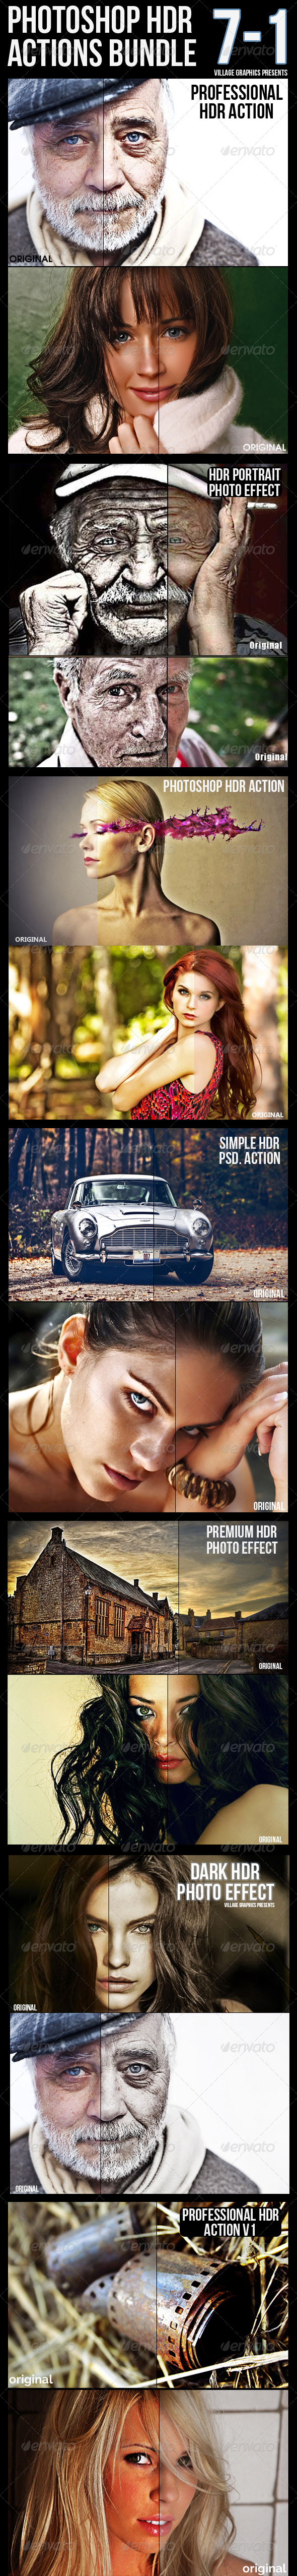 GraphicRiver 7-1 HDR Actions Bundle 8766301